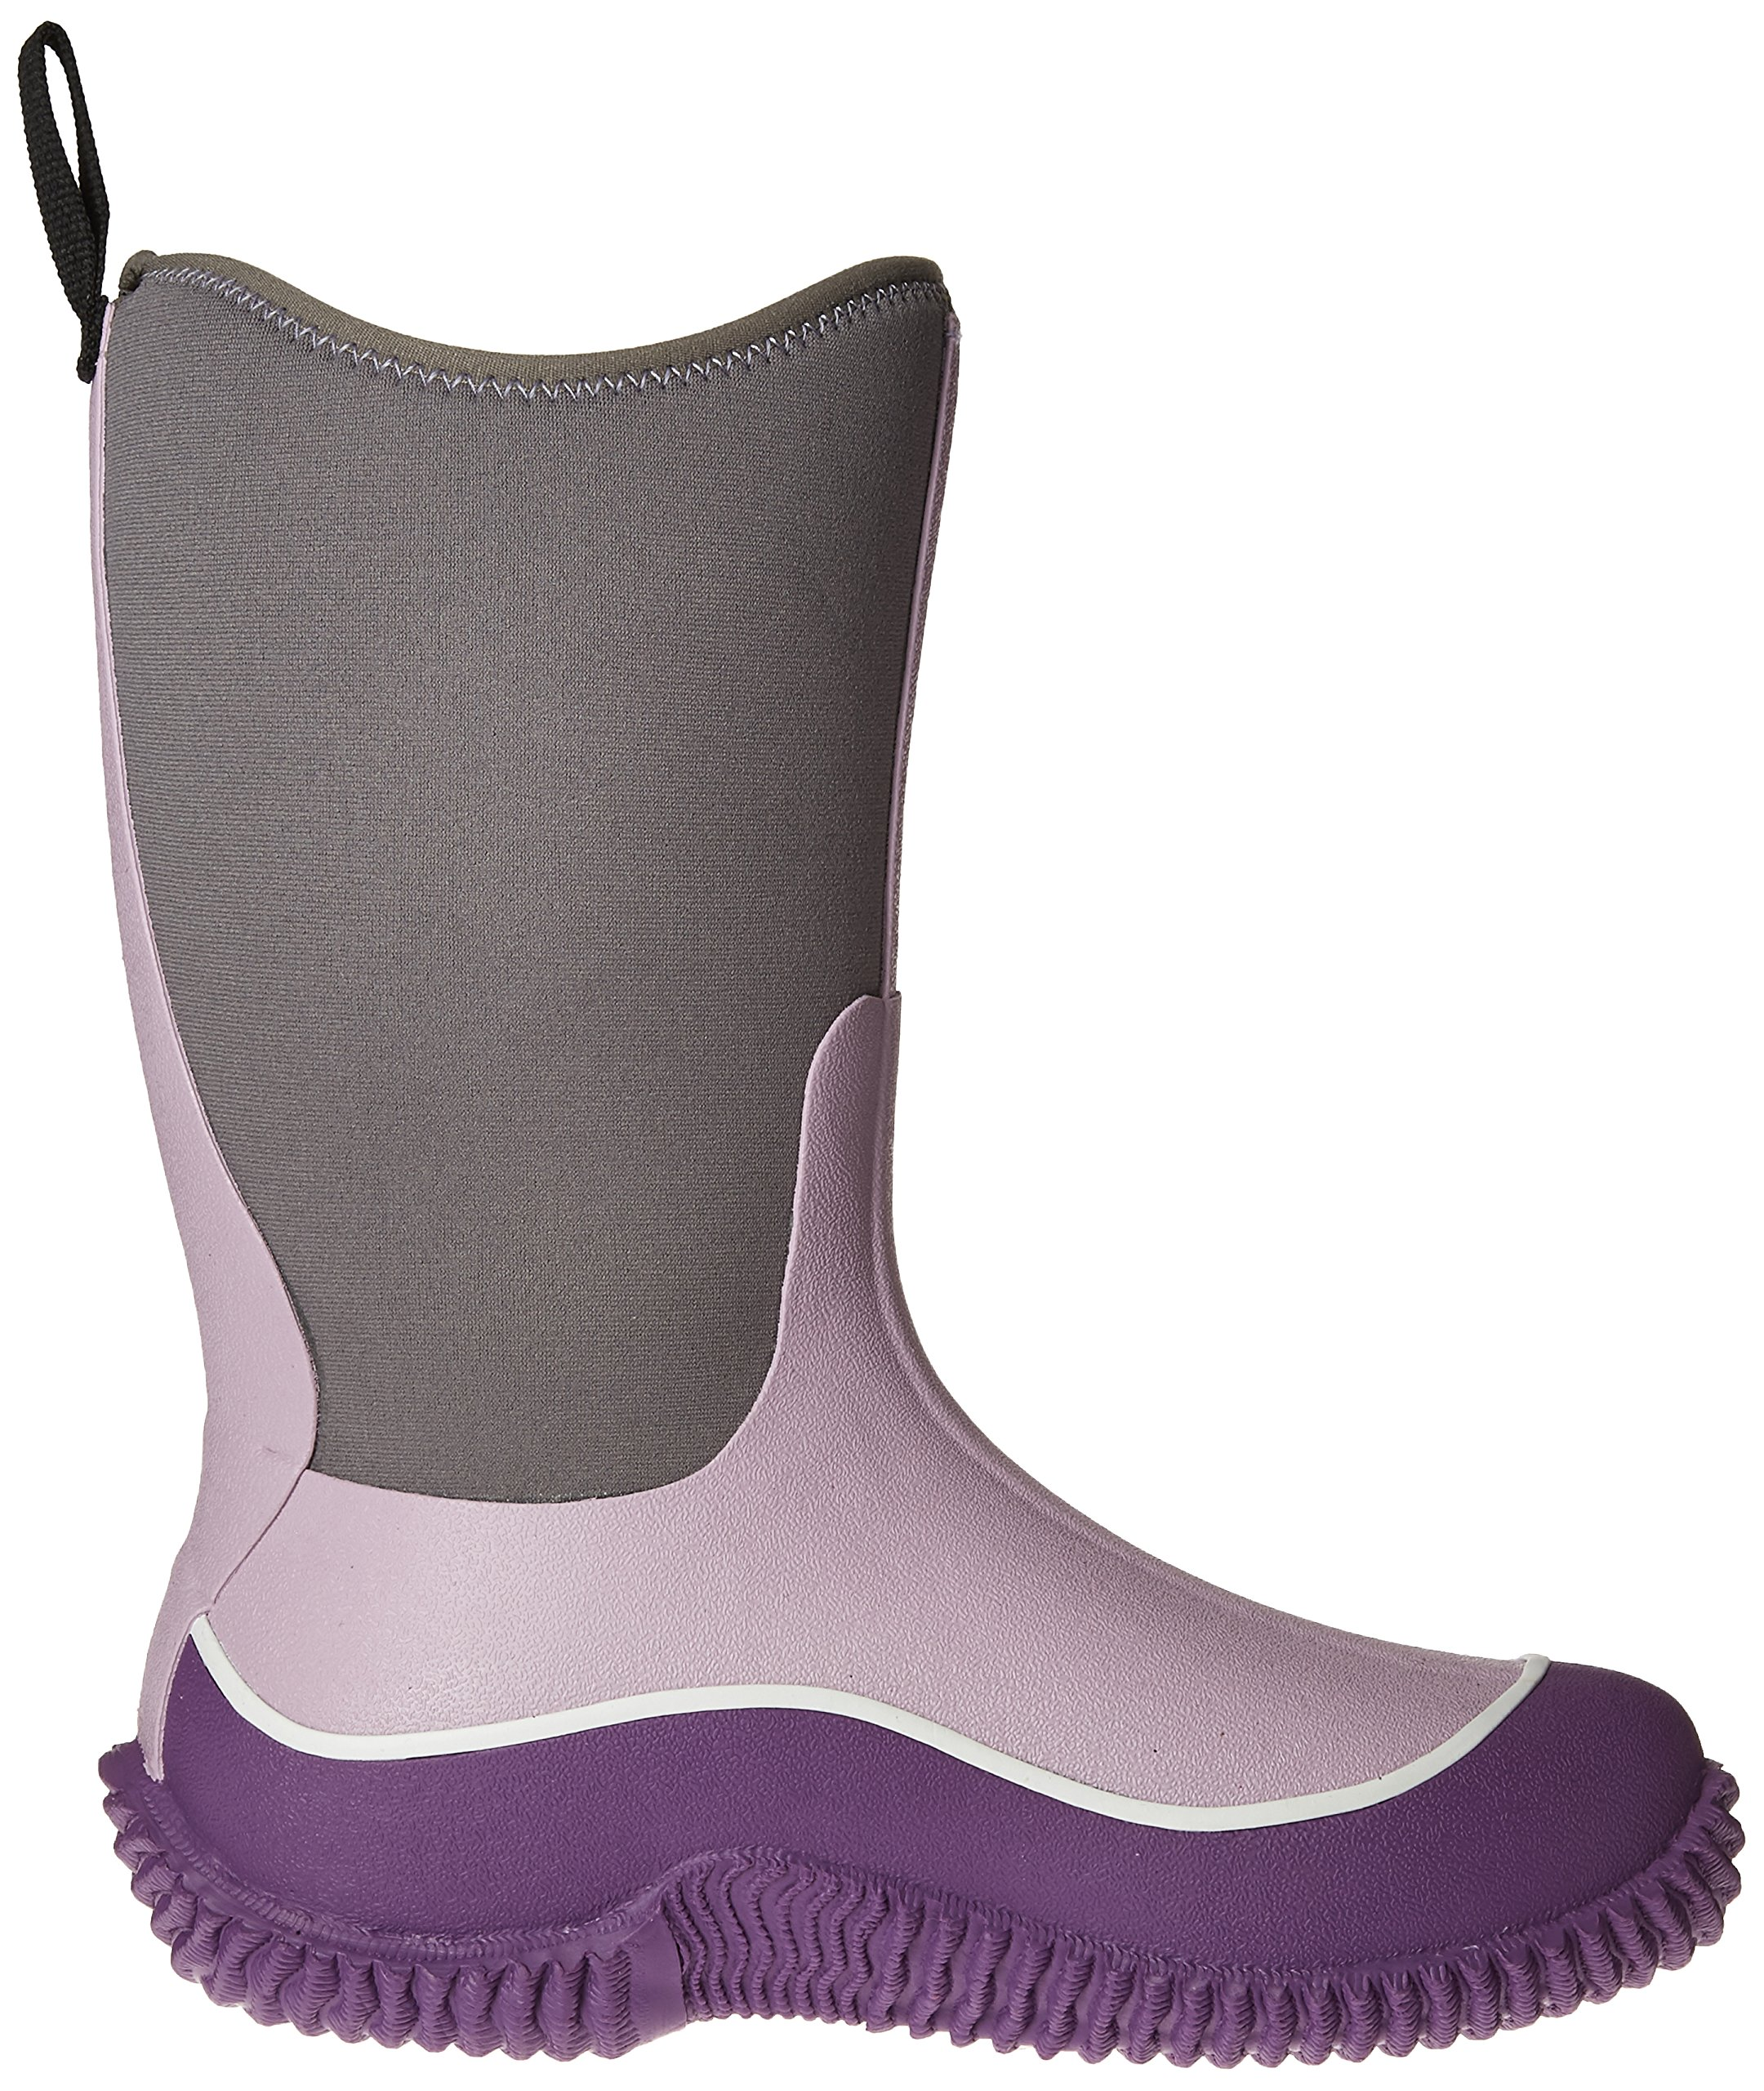 Muck Hale Multi-Season Kids' Rubber Boots by Muck Boot (Image #7)